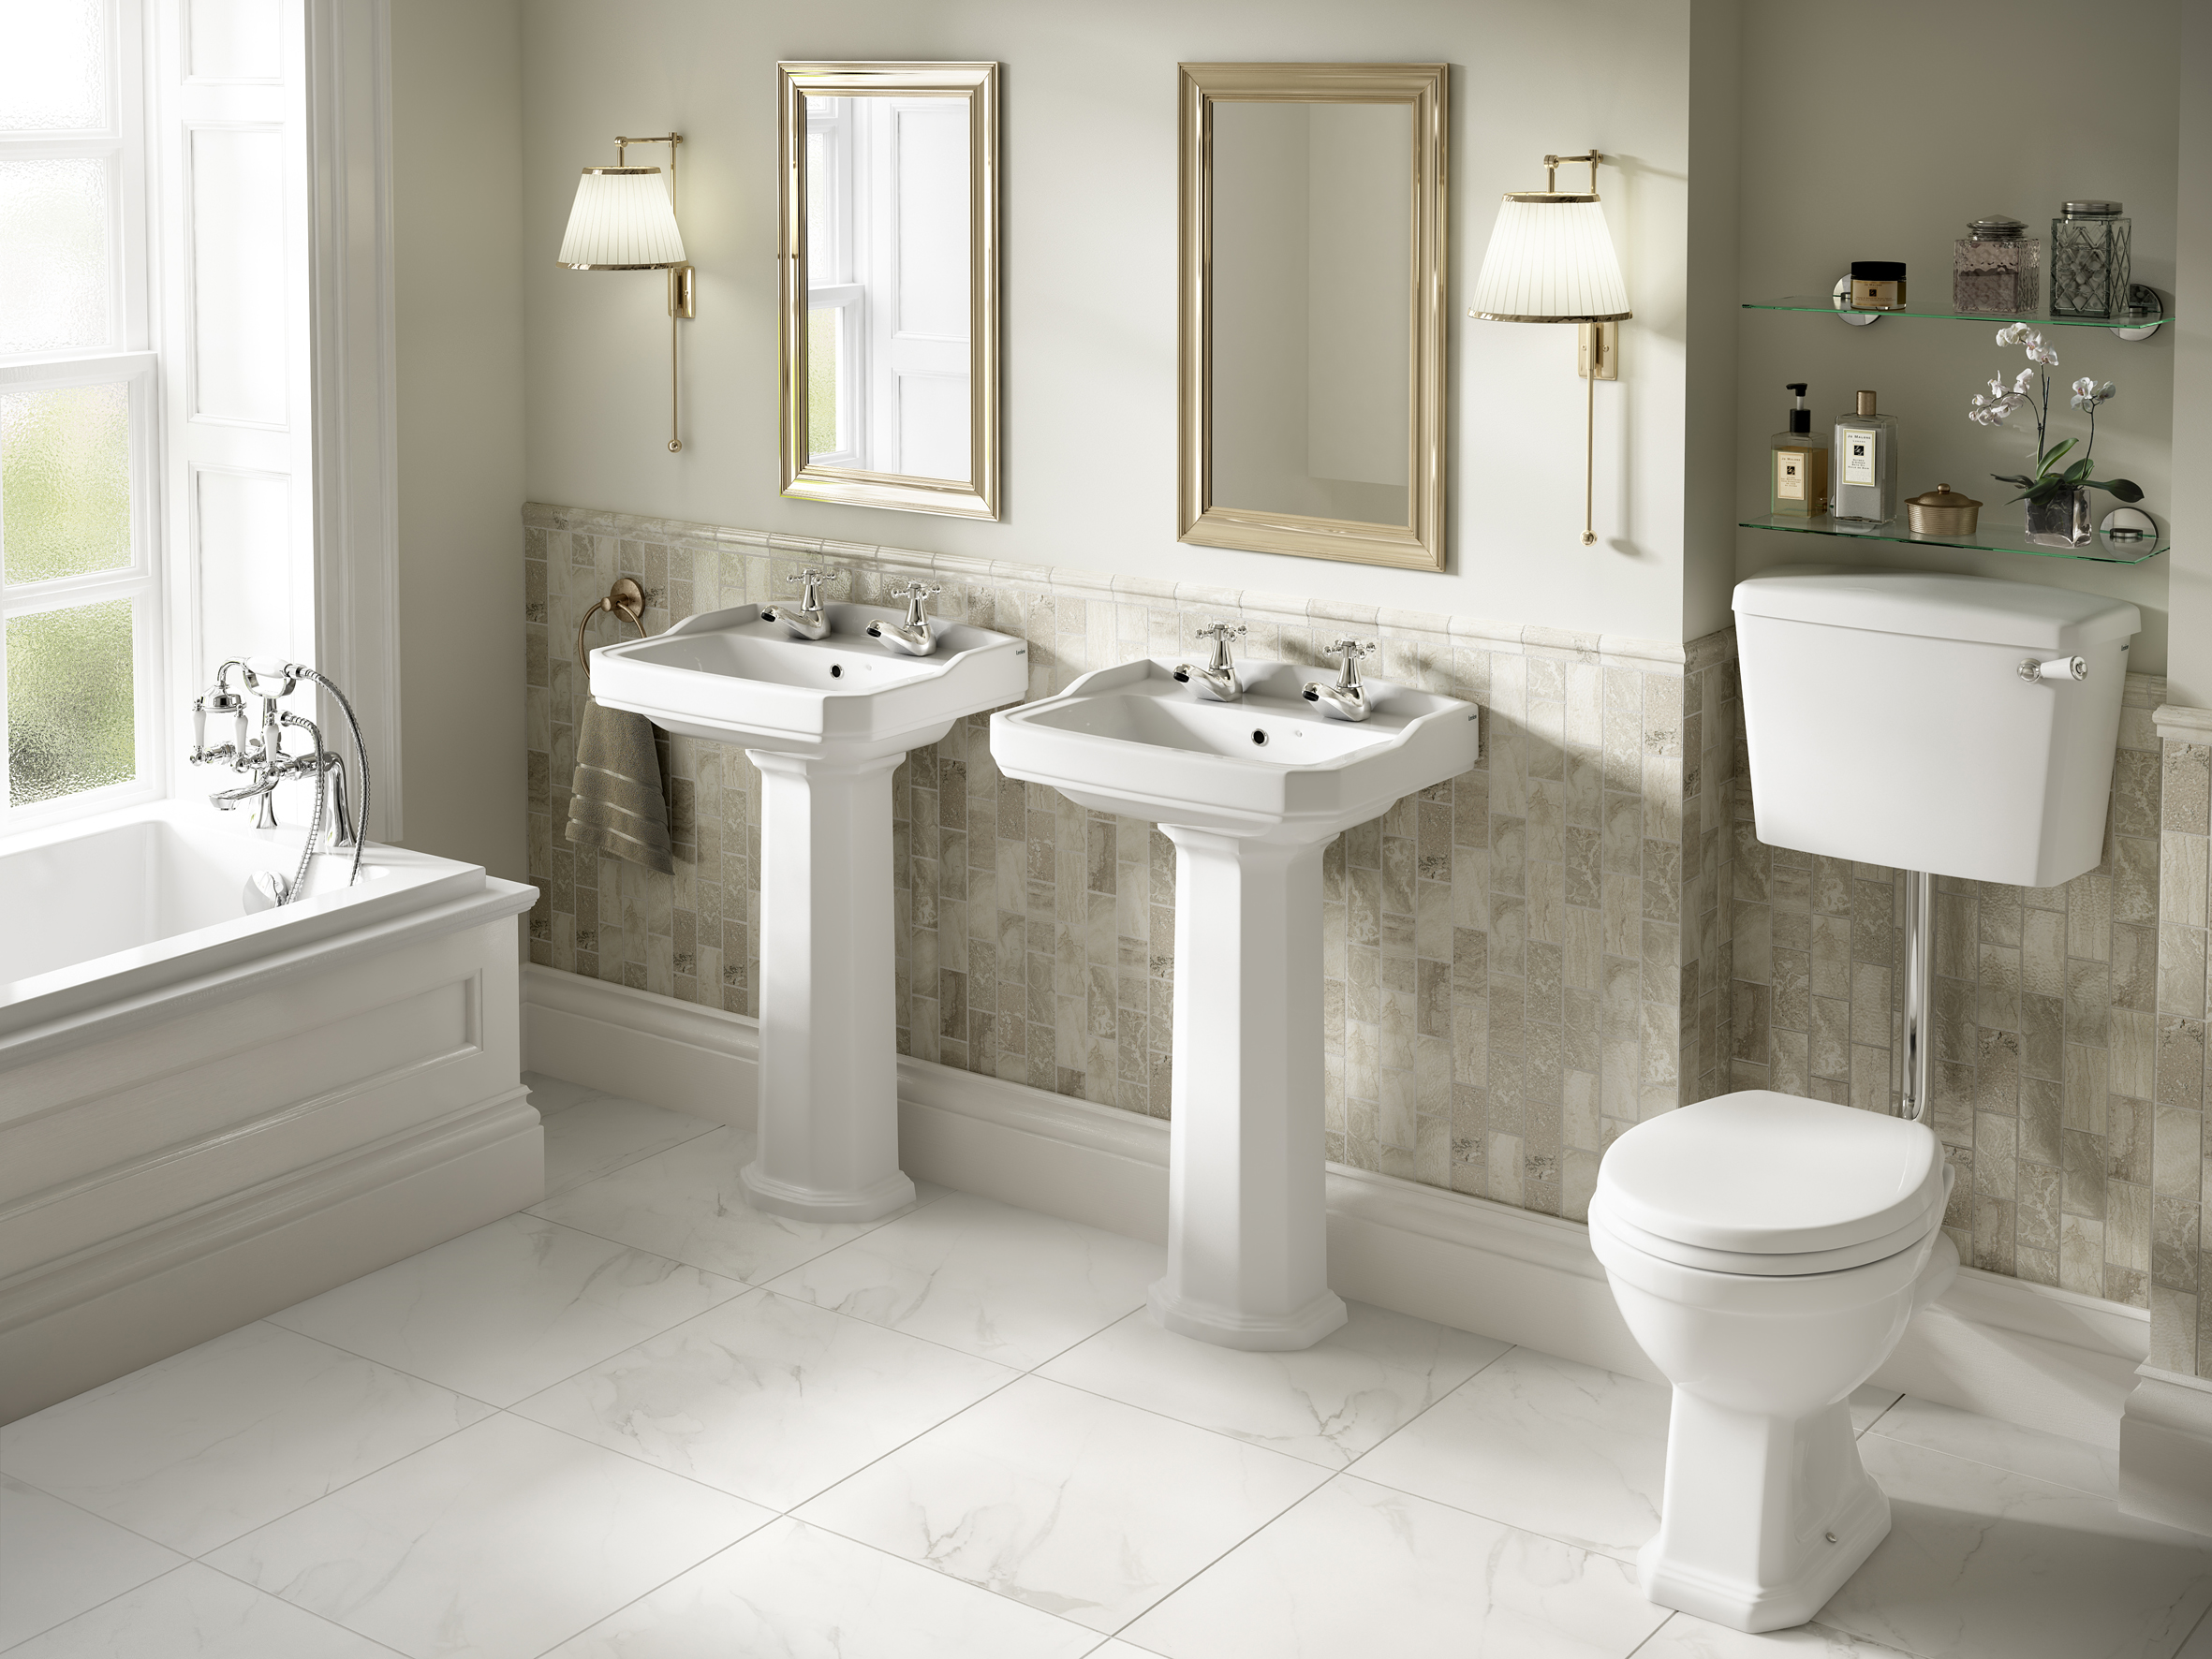 New roxton suite from lecico design buy build for Buy bathroom suite uk